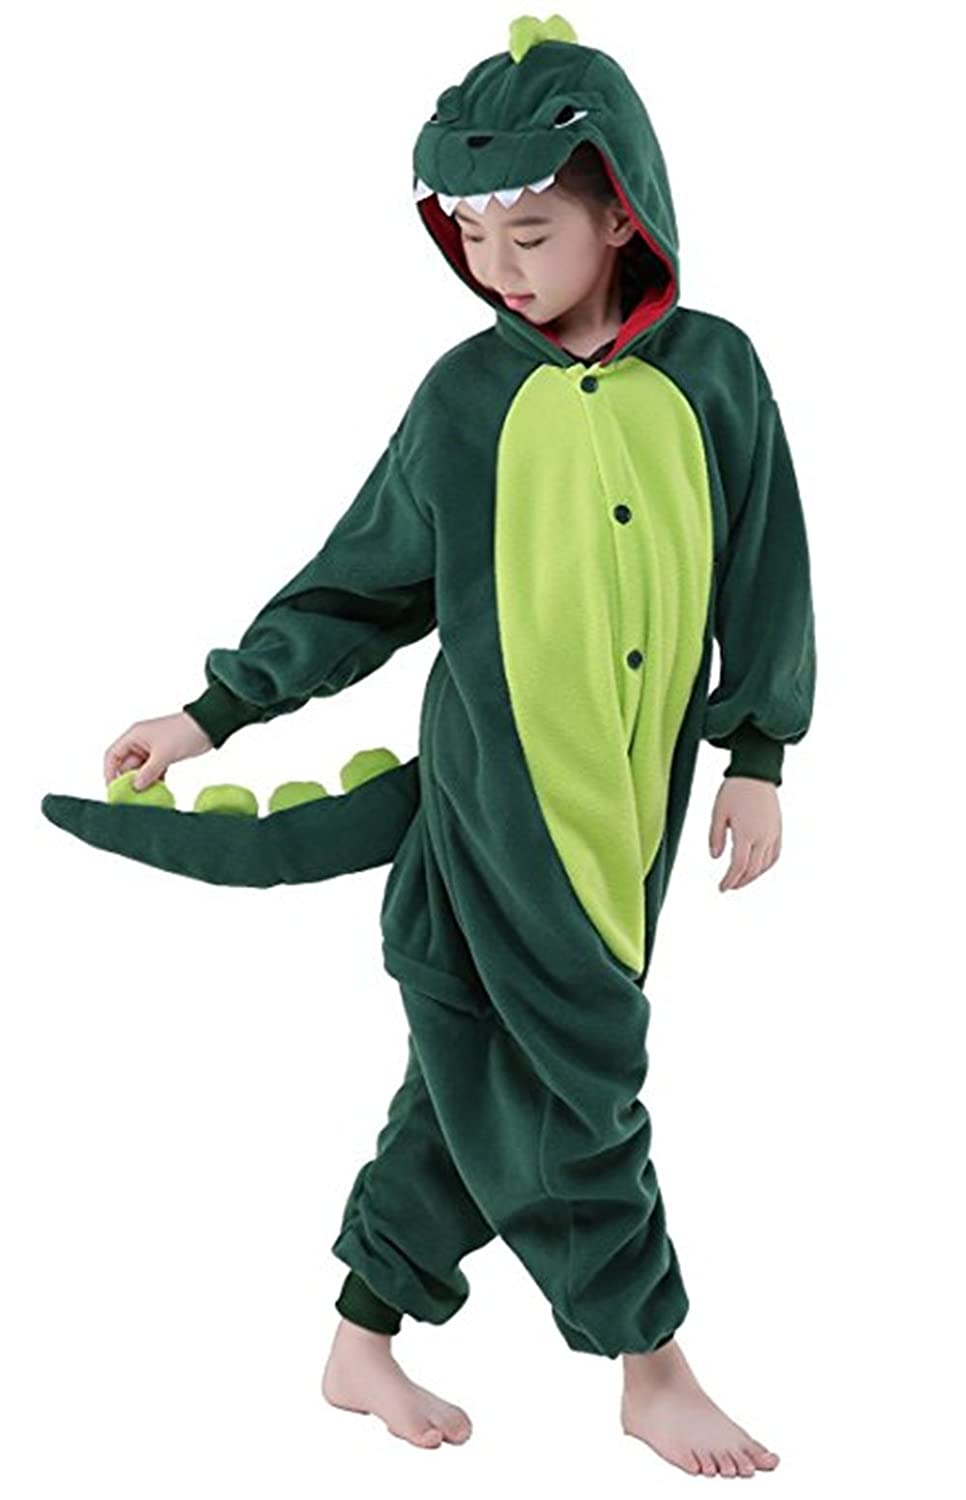 b40a3e73c1 Adult Kids Pajamas Dinosaur Animal Cosplay Onesie One Piece Halloween  Costume Outfit Homewear  Amazon.co.uk  Clothing